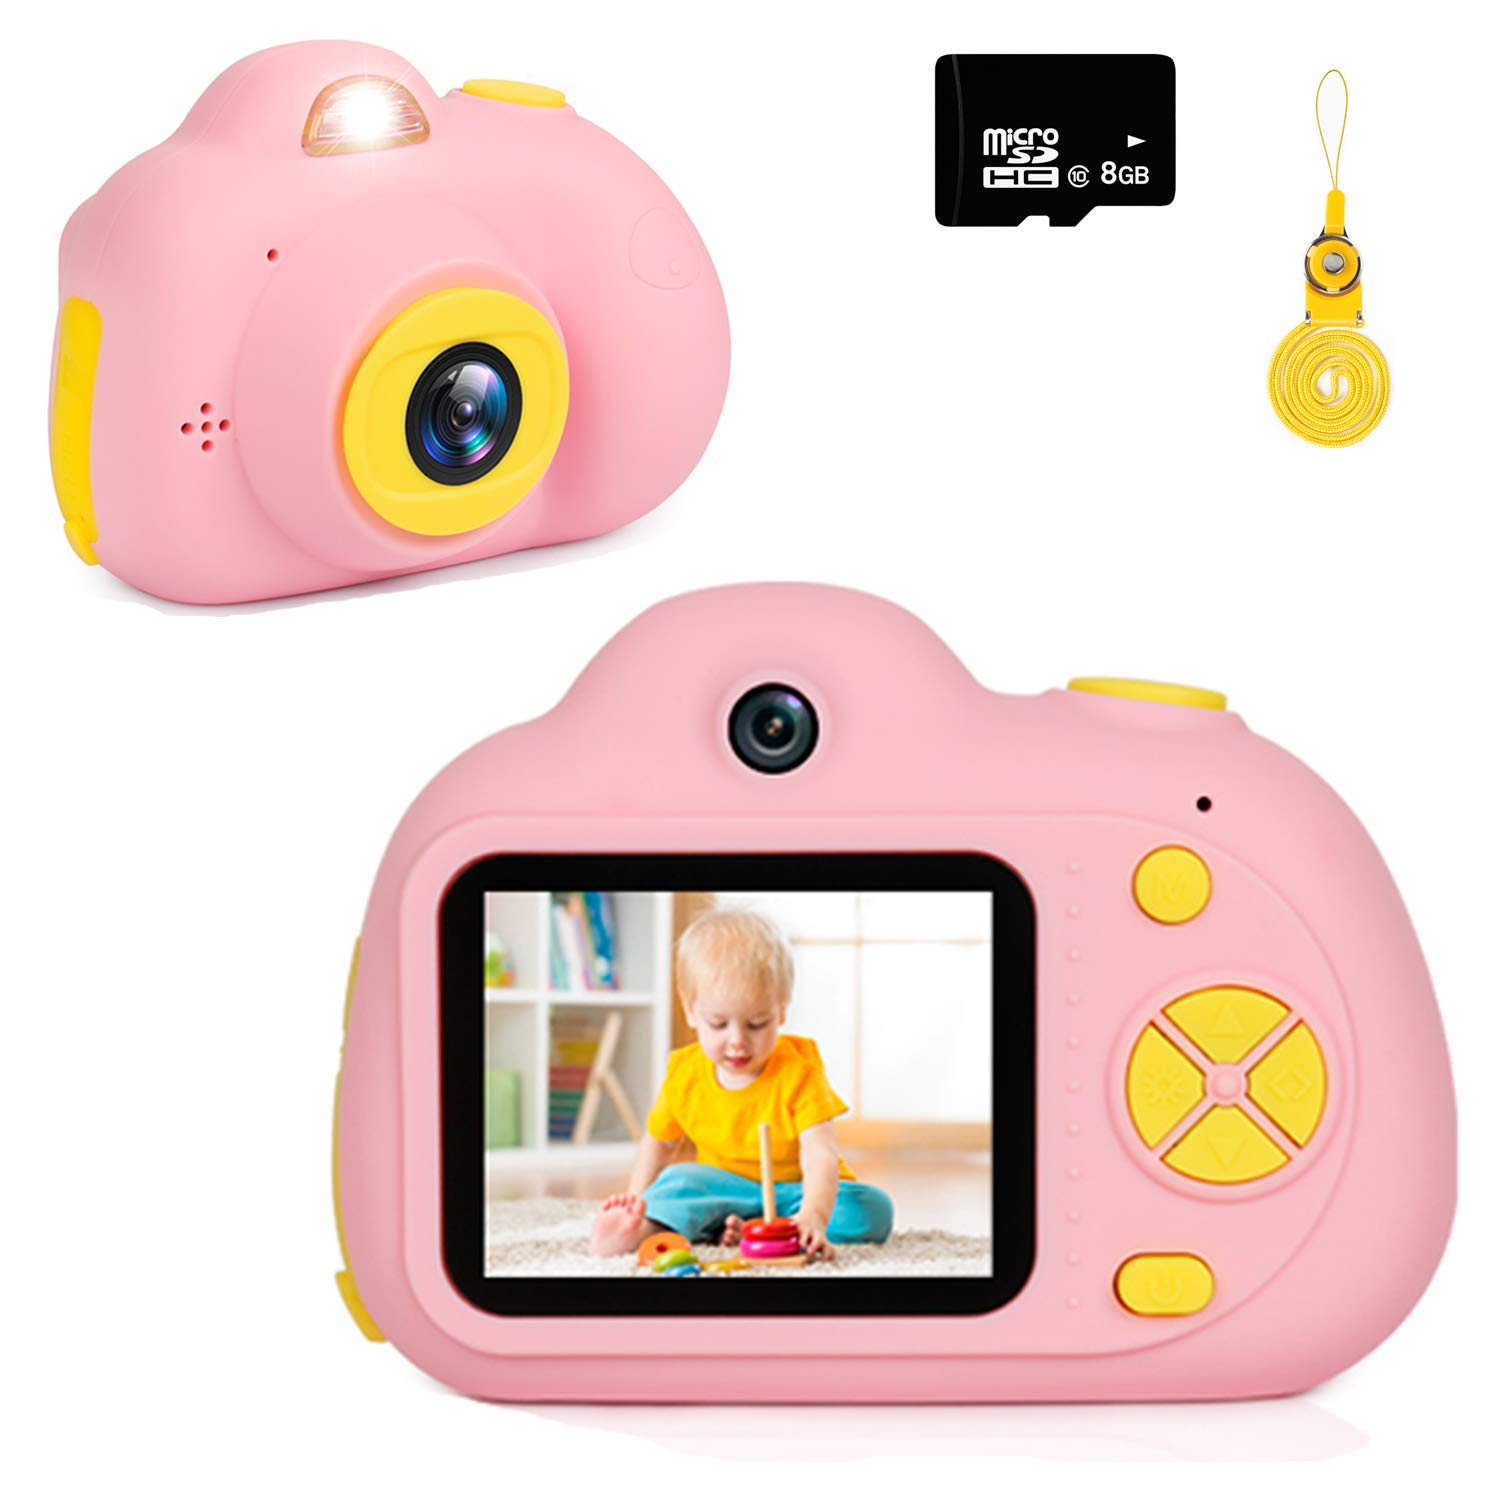 "Kids Camera Gifts for Girls 1080P HD,Mini Rechargeable Children Shockproof Digital Front and Rear Selfie Camera Child Camcorder for 3-9 Year Old Kids Gifts Waterproof 2.0"" LCD Screen with 8GB SD Card"